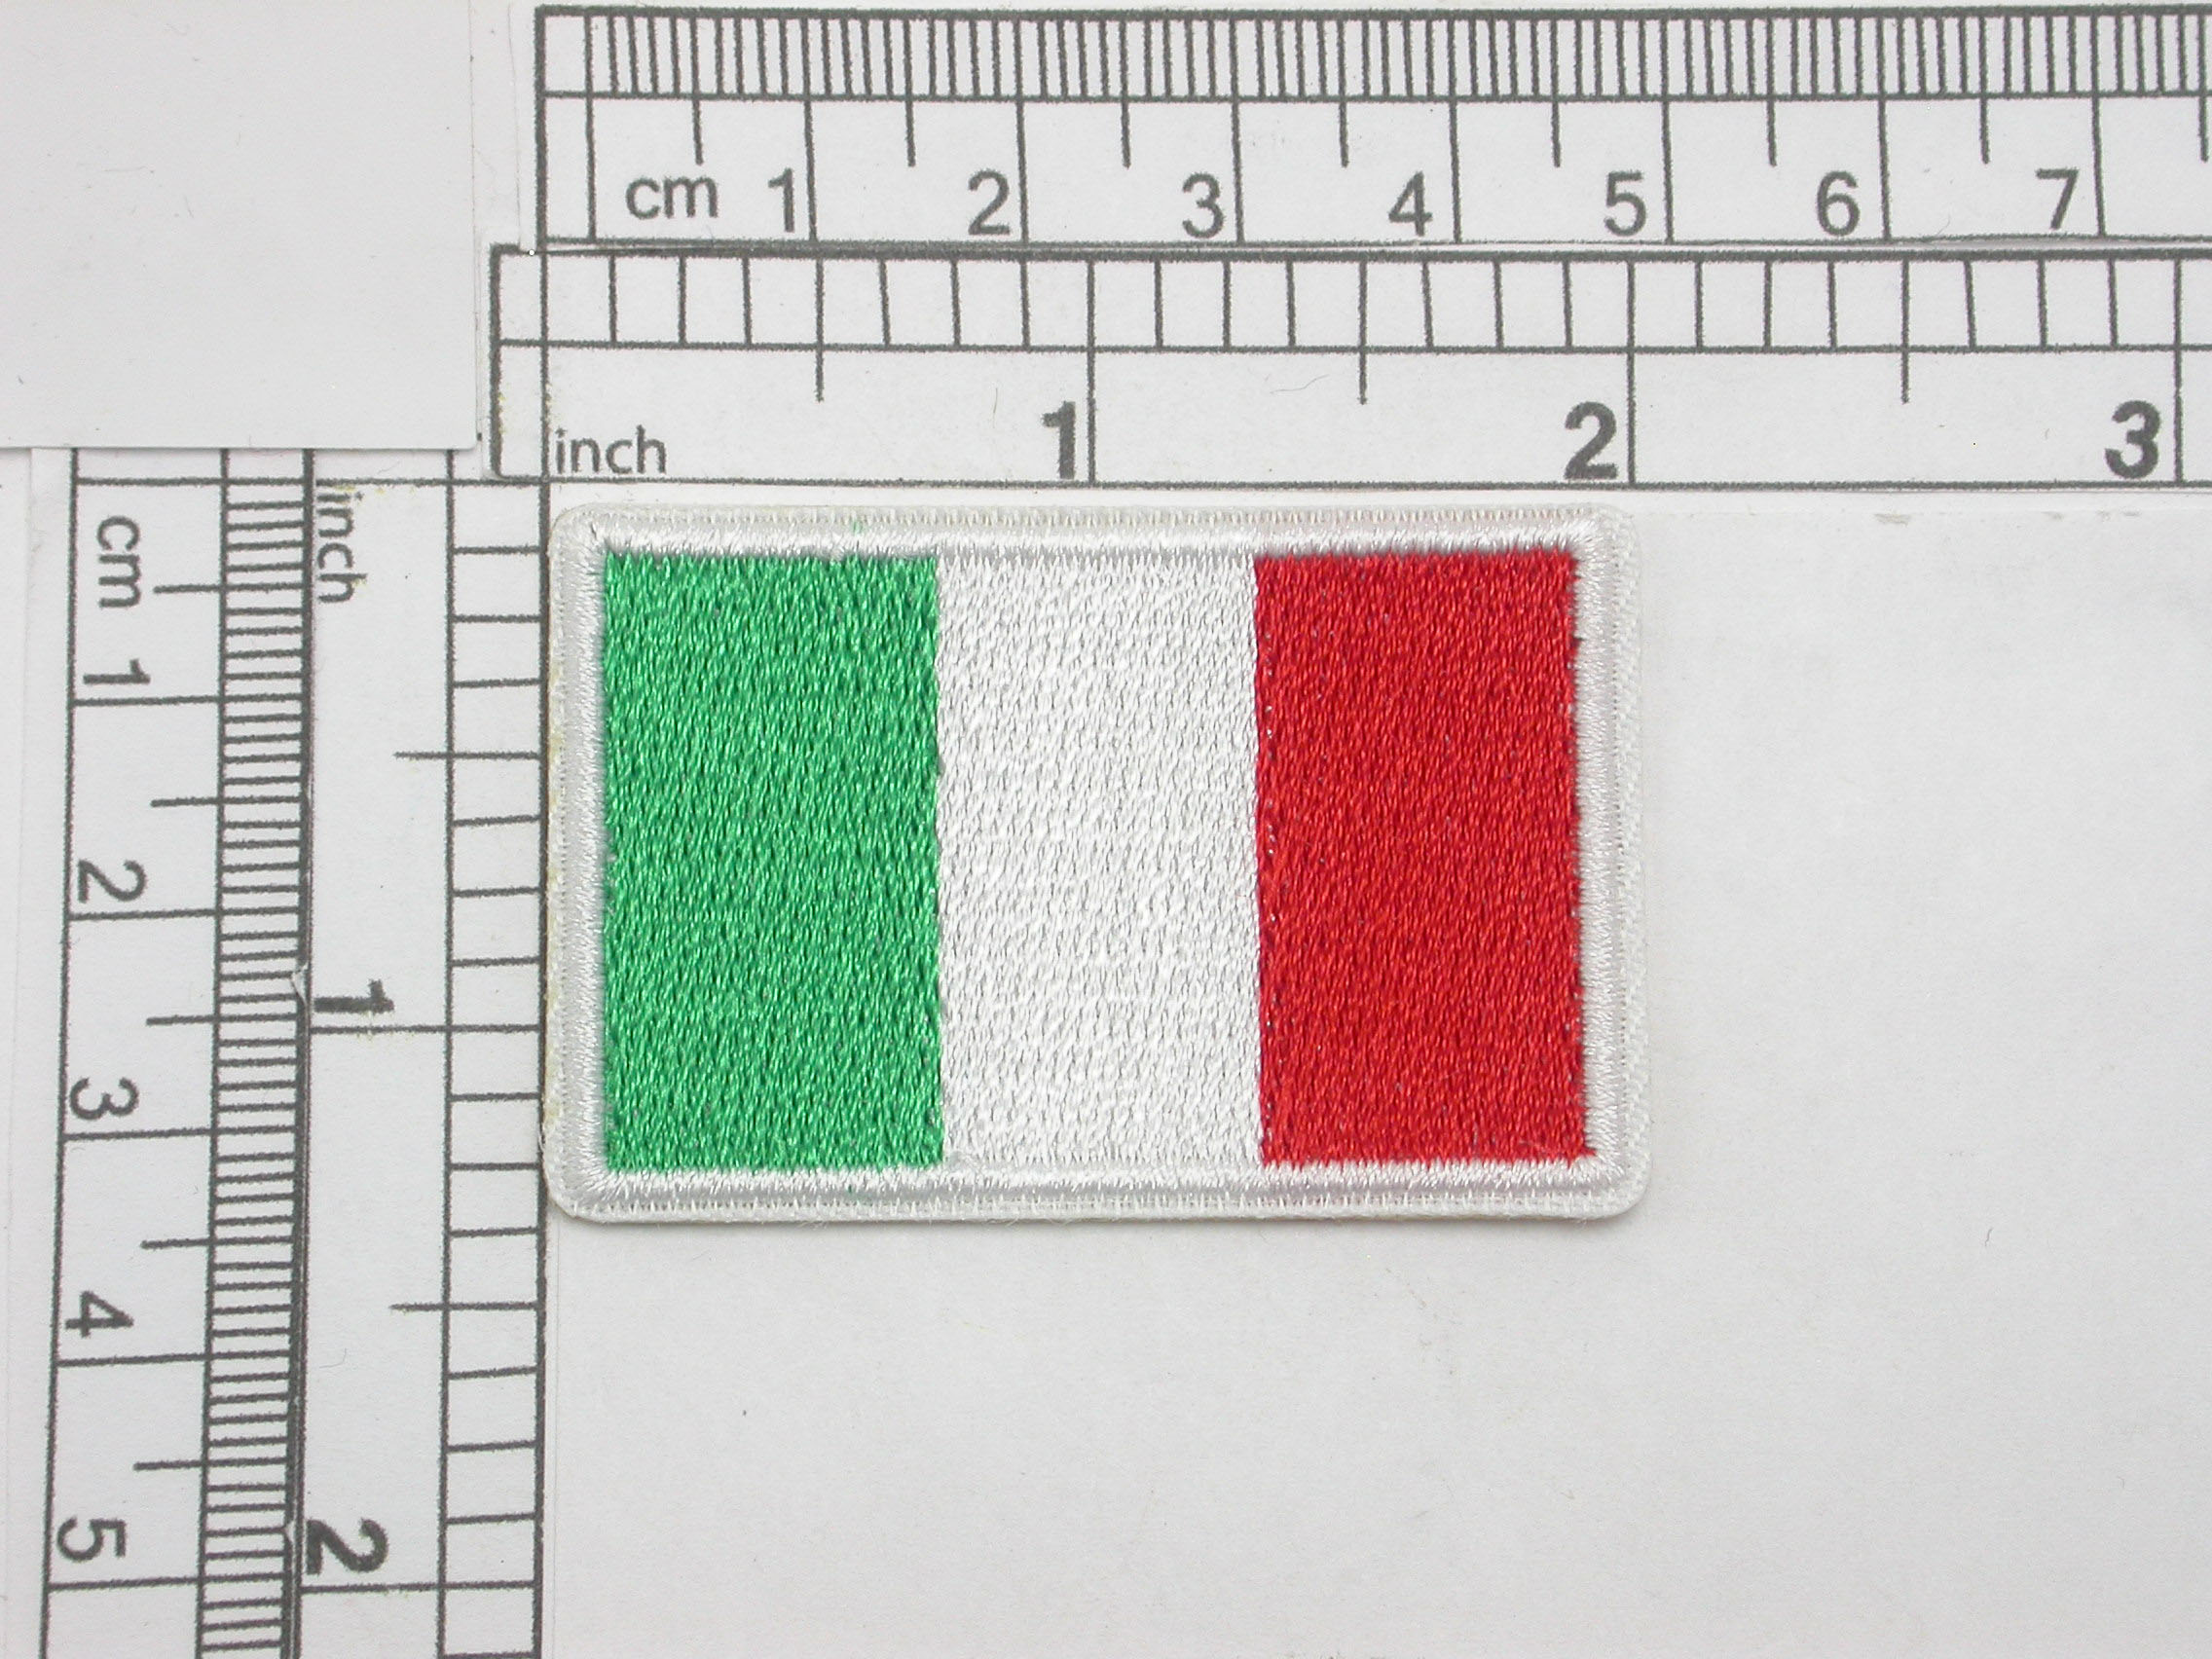 """Italy Flag Embroidered Iron On Patch Applique Italia  2"""" x 1 1/4""""  (51mm x 32mm) approx"""